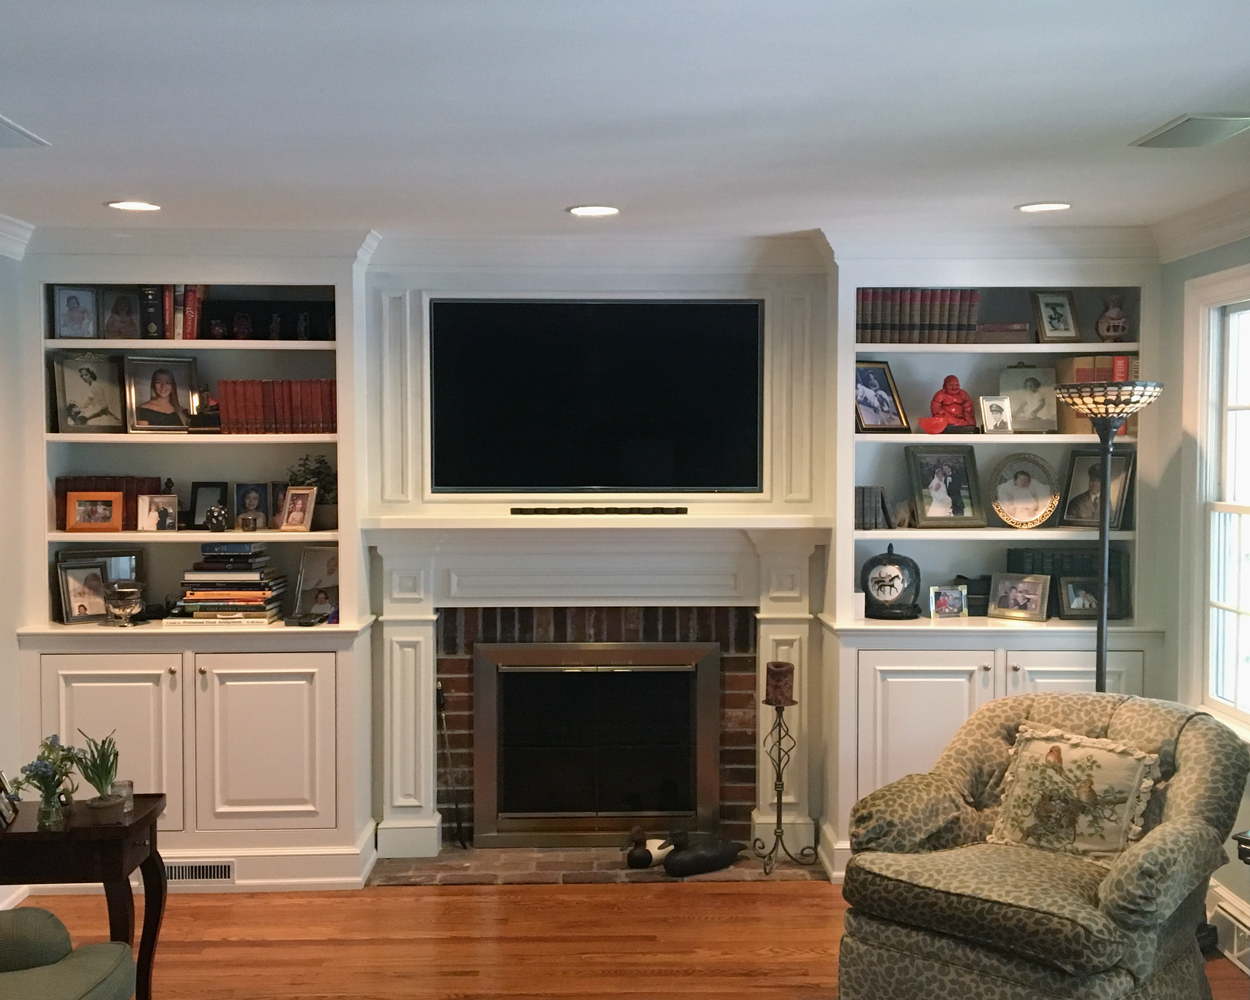 Fireplace Tv Bookshelf